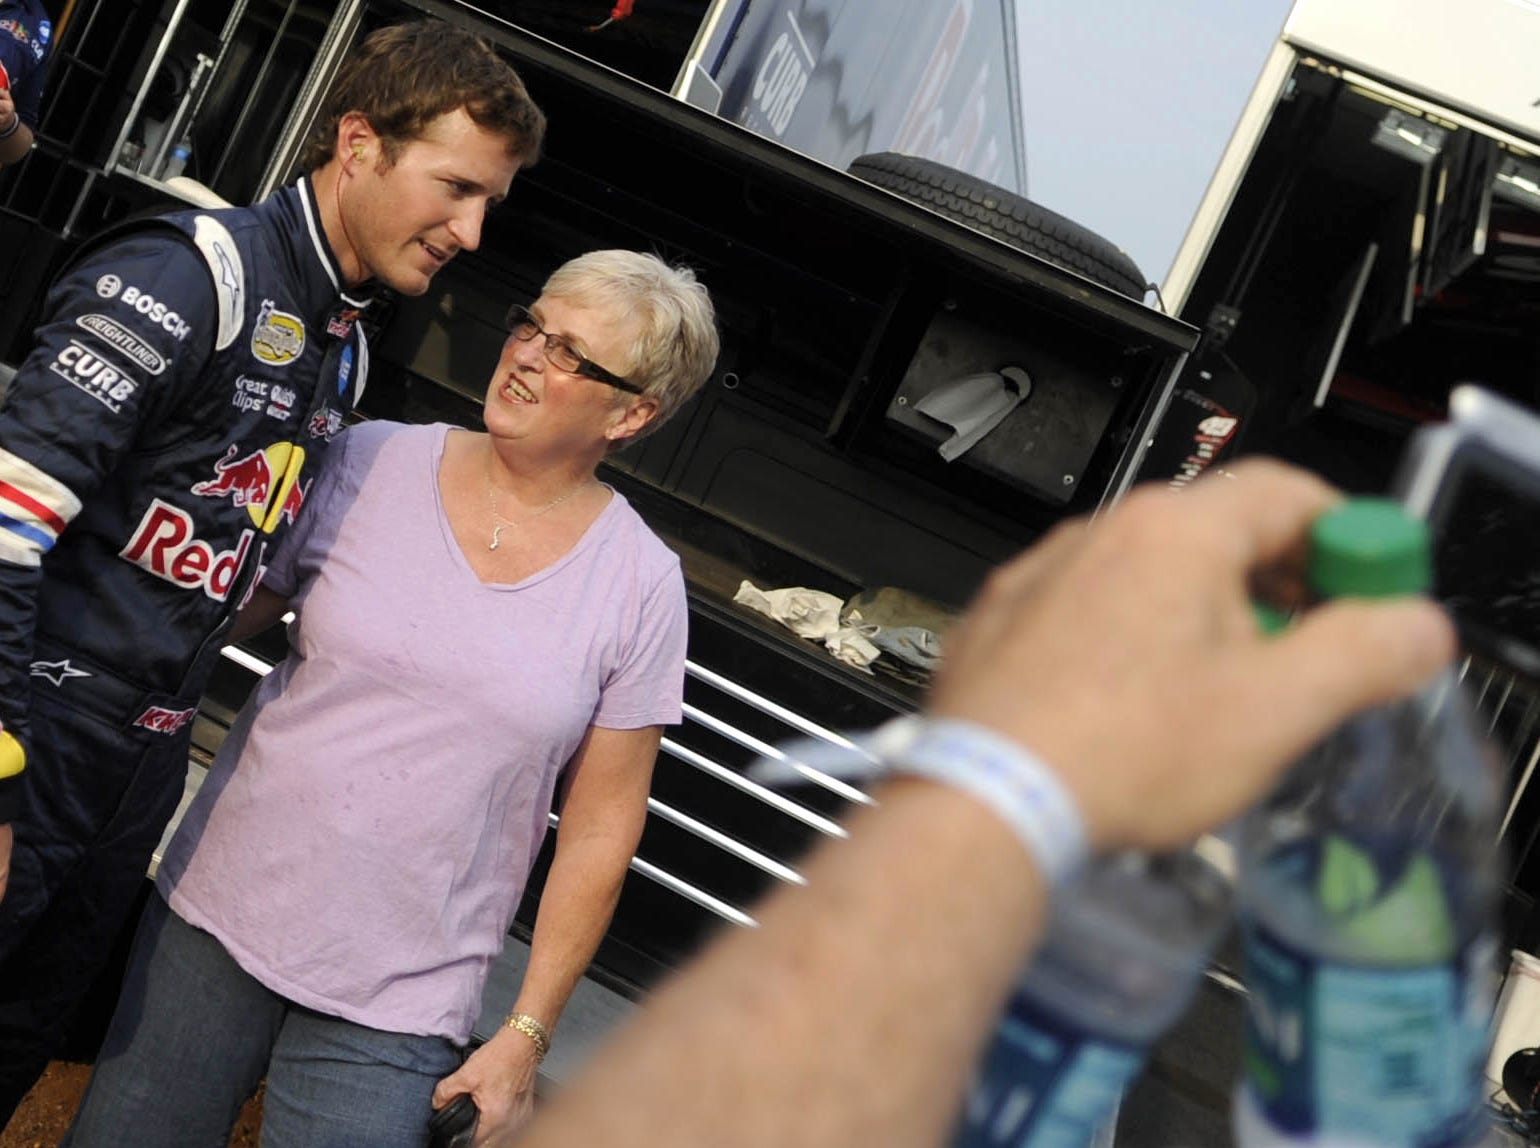 Margie Honeycutt of Salisbury has her photo taken with Kasey Kahne near the sprint car he would race at Williams Grove Speedway Friday, July 22, 2011.